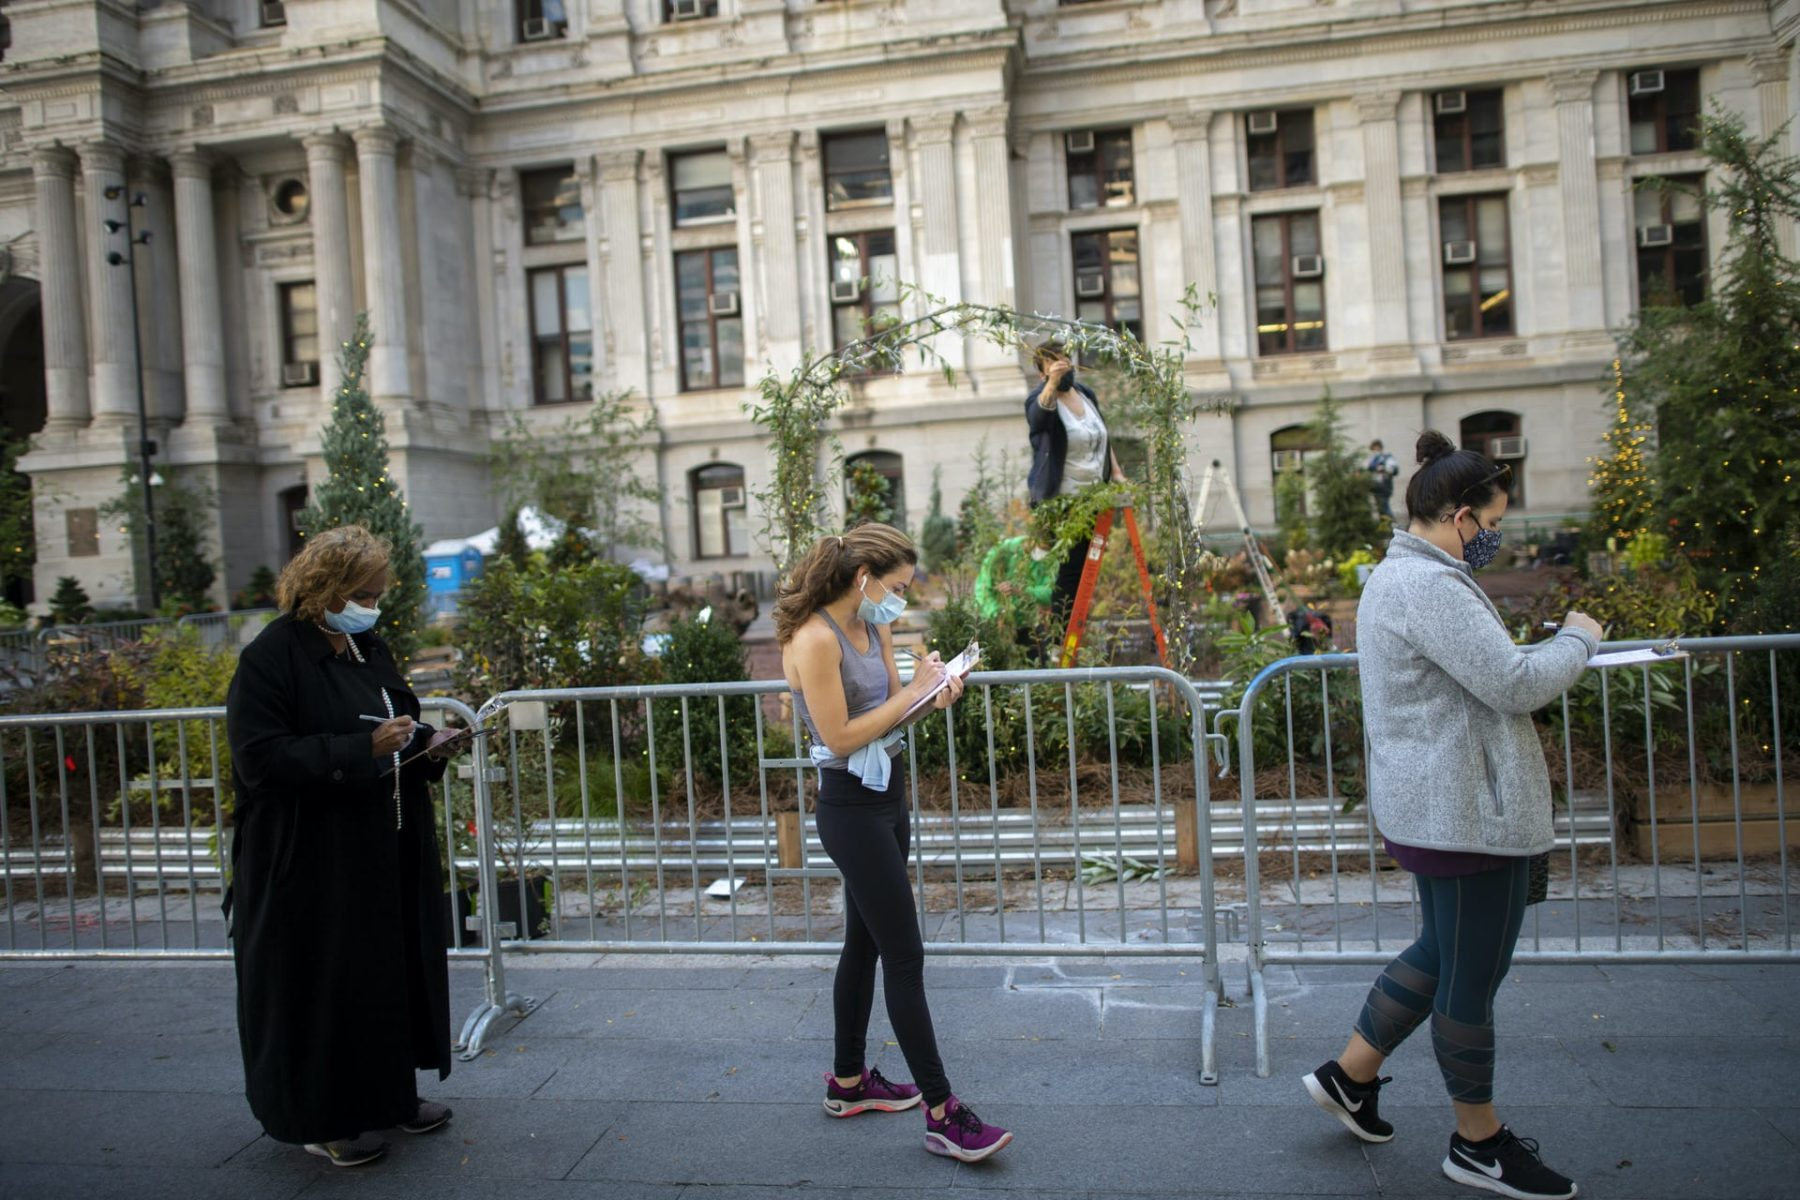 Voters in Philadelphia complete registration paperwork while waiting outside of Philadelphia City Hall for early voting on October 27, 2020.